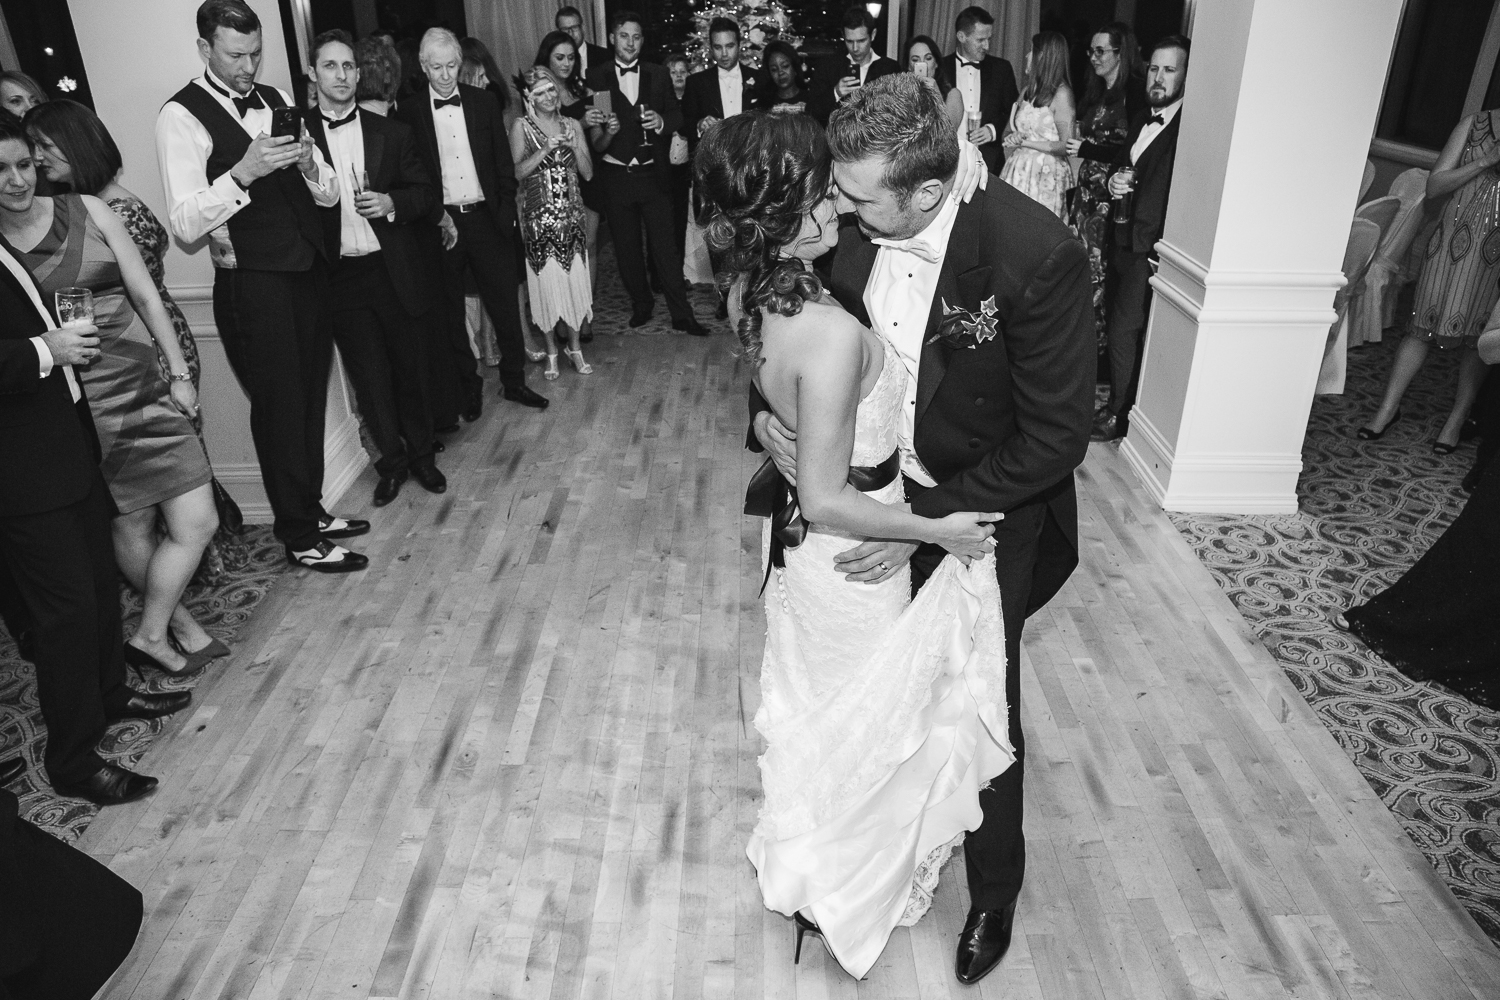 Slieve Donard Wedding Dance